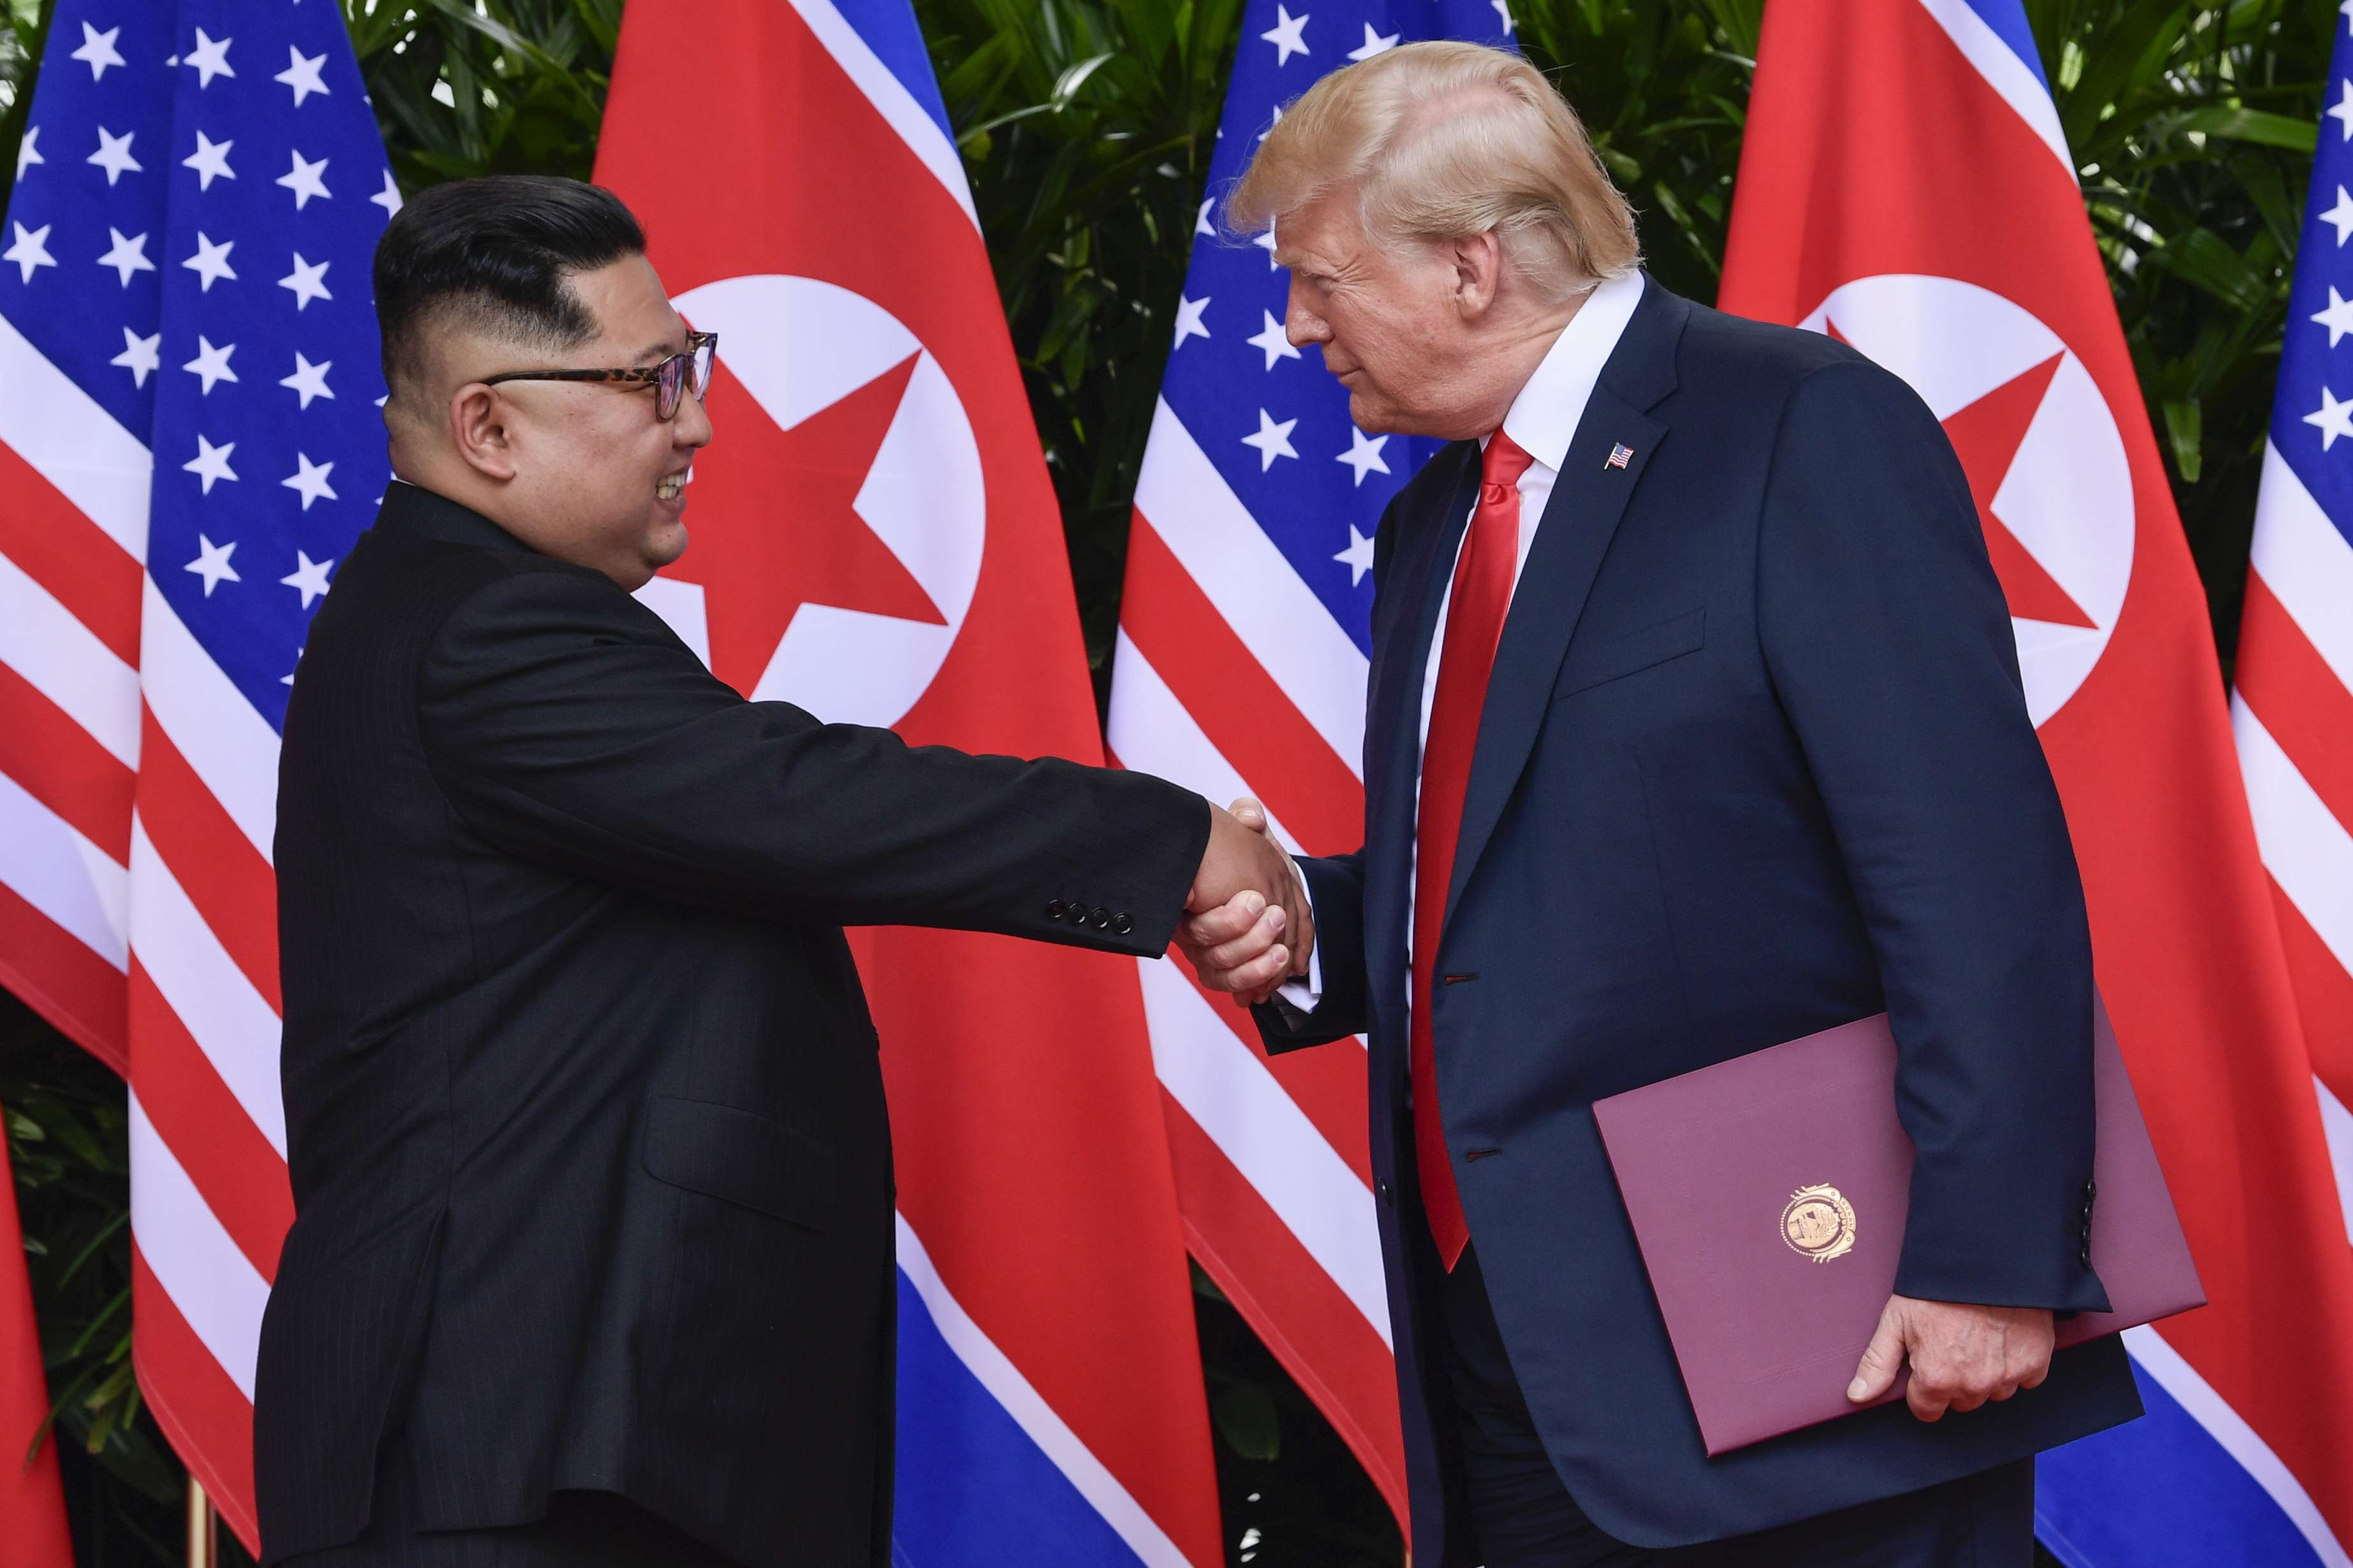 North Korean leader Kim Jong-un (L) and US President Donald Trump shake hands at the conclusion of their meetings at the Capella resort on Sentosa Island in Singapore, on June 12. (AP)